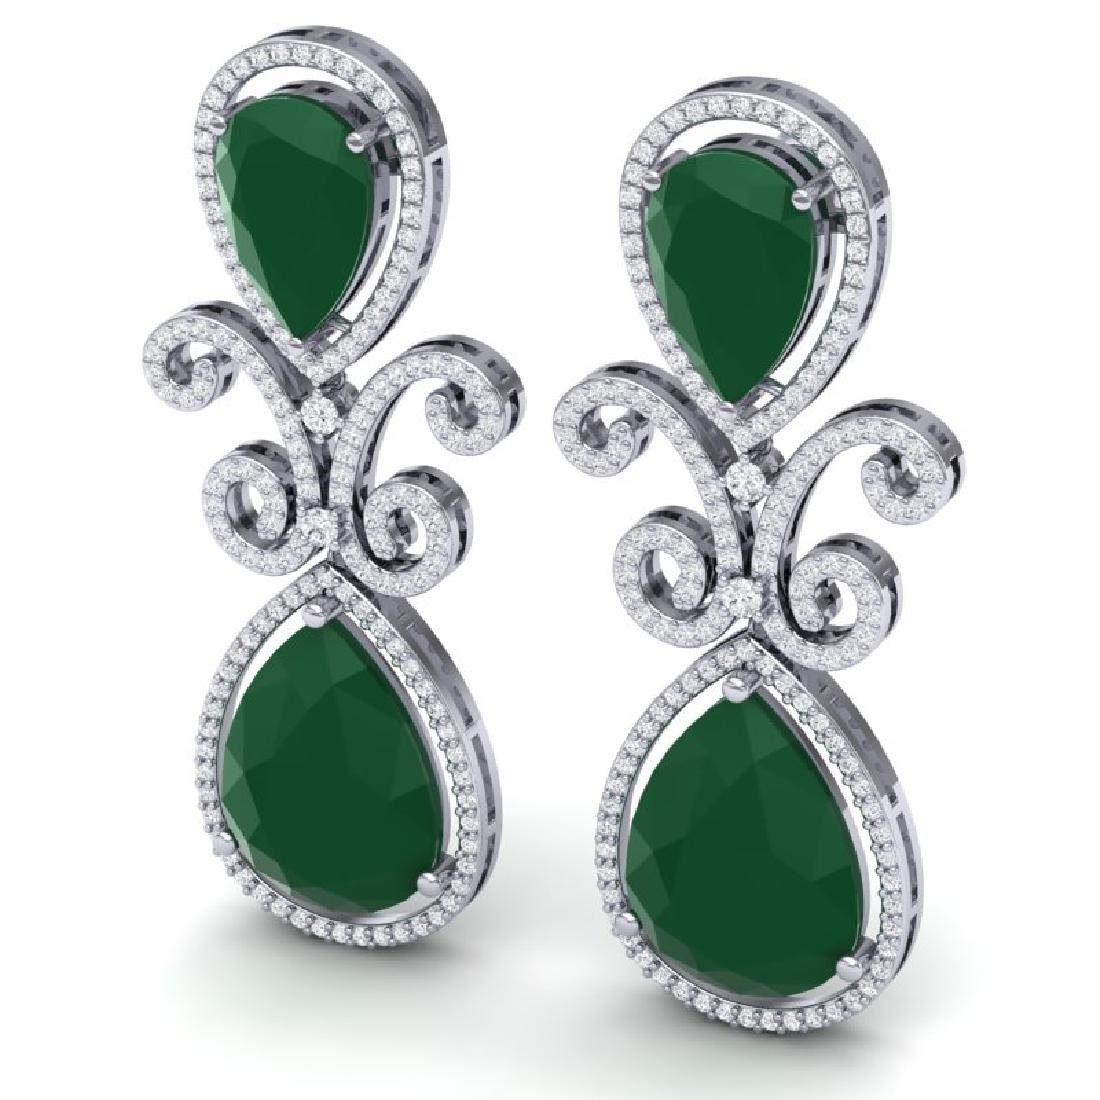 31.6 CTW Royalty Emerald & VS Diamond Earrings 18K - 2